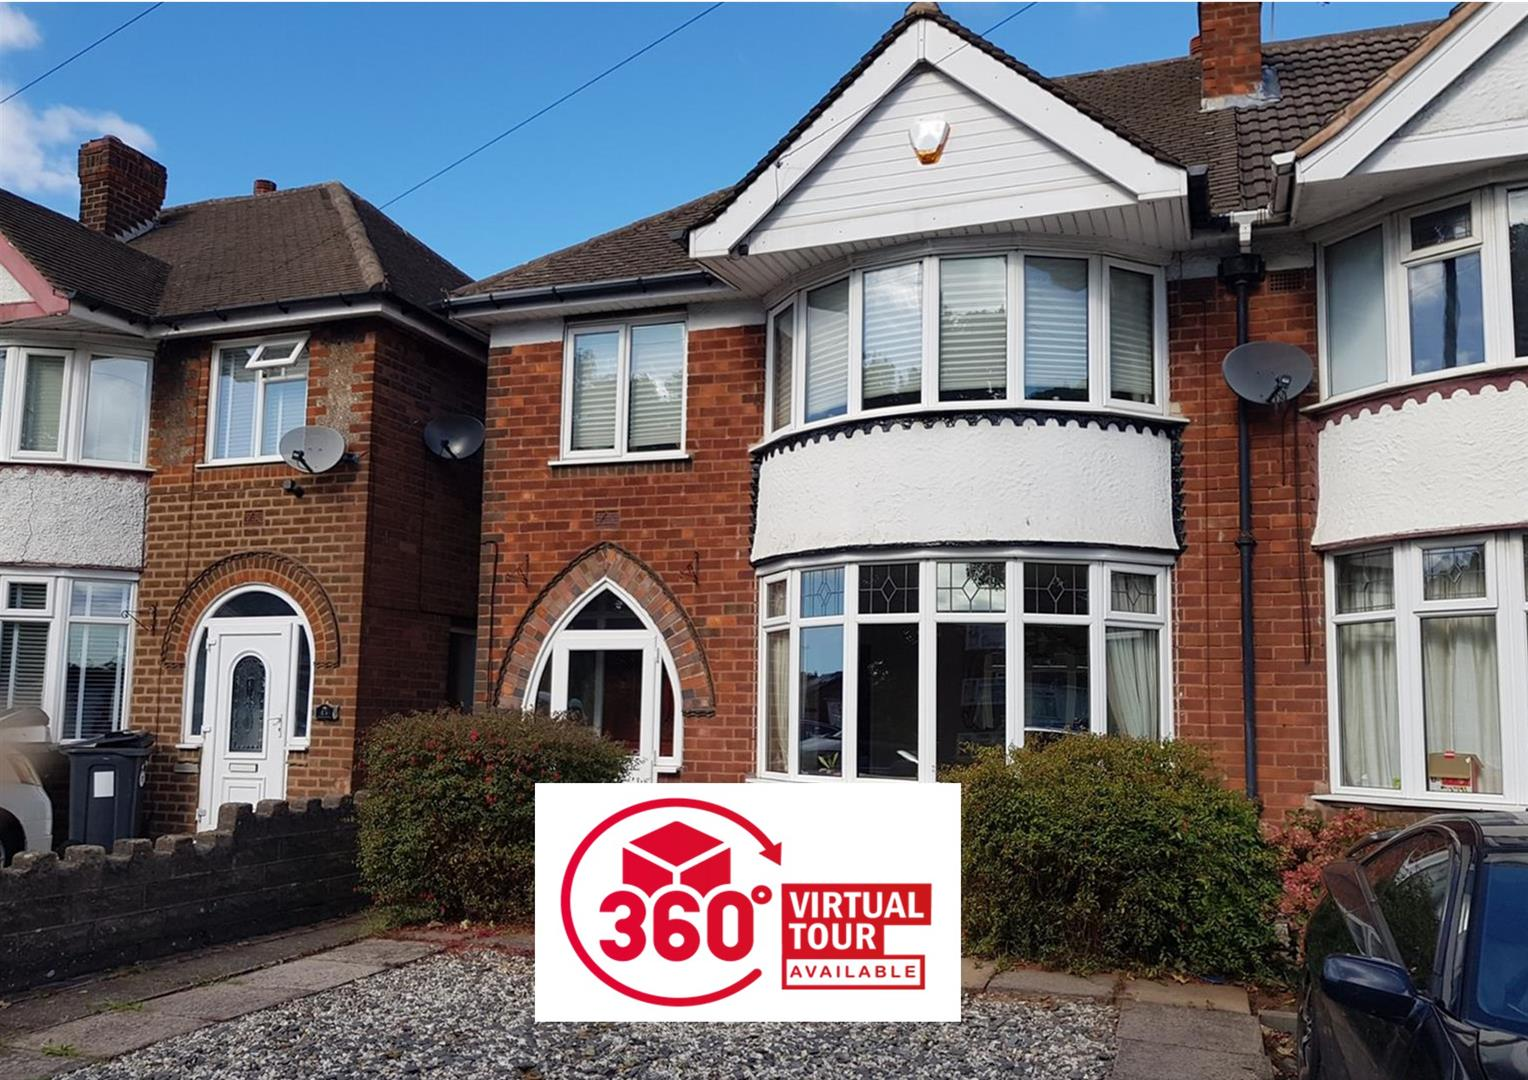 3 bed house for sale in Stechford Road, Birmingham, B34